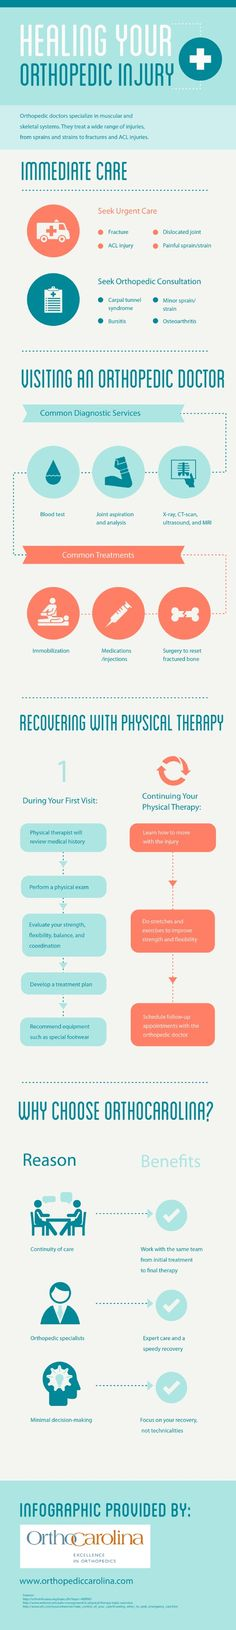 During your first physical therapy session, the therapist will review your medical history, perform a physical exam, and evaluate your strength, flexibility, balance, and coordination. Click over to this Charlotte orthopedic surgeon infographic for more information about physical therapy. Source: http://www.orthopediccarolina.com/674914/2013/04/03/healing-your-orthopedic-injury-infographic.html